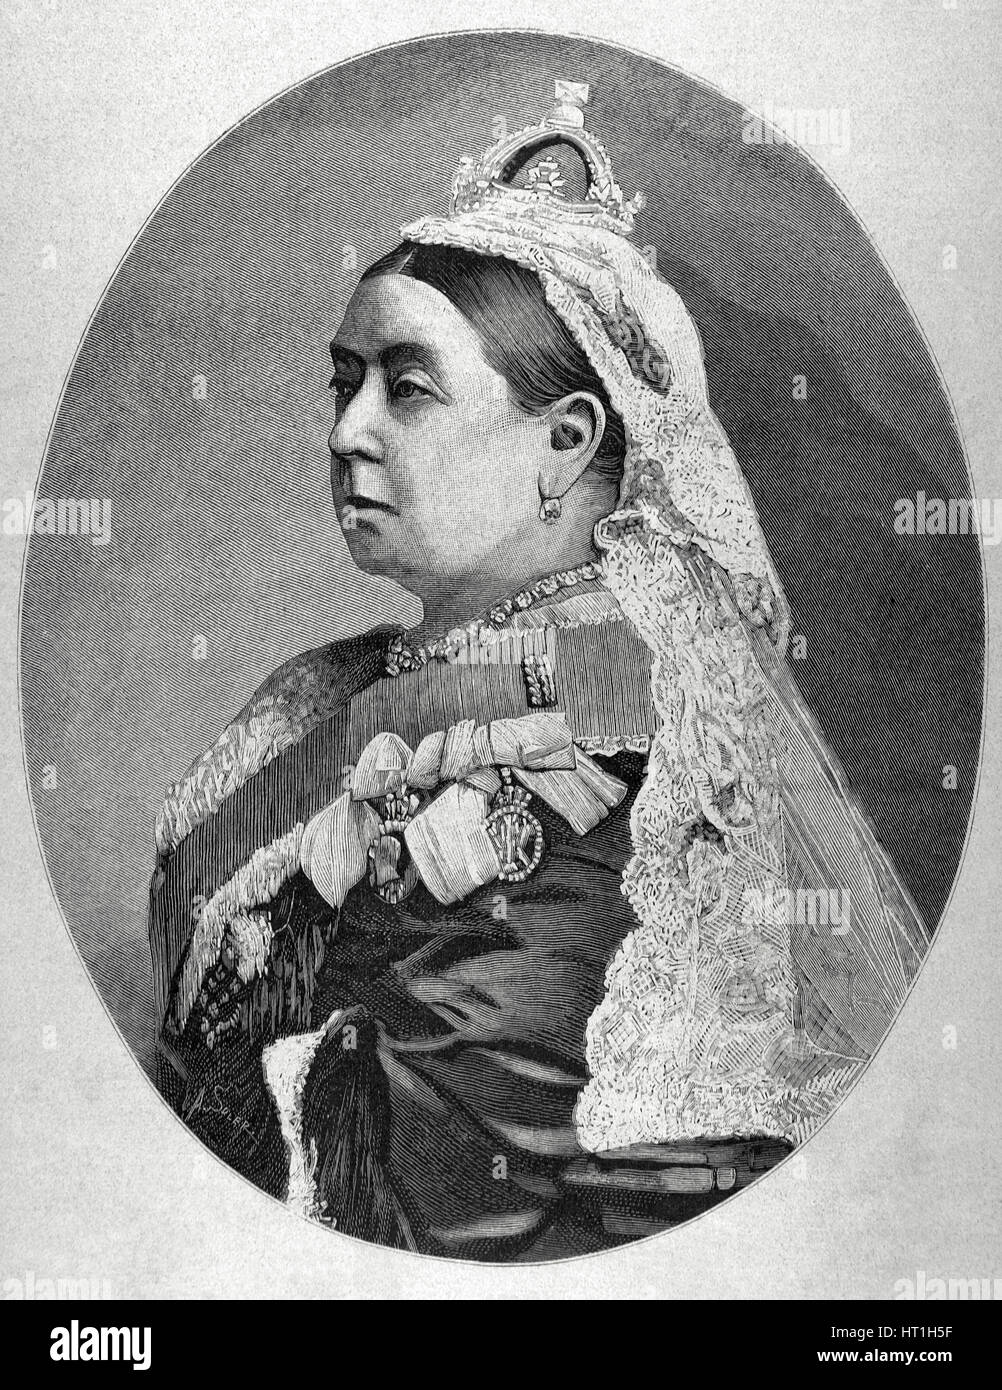 Victoria I (1819-1901). Queen of the United Kingdom of Great Britain and Ireland (1837-1901) and Empress of India - Stock Image